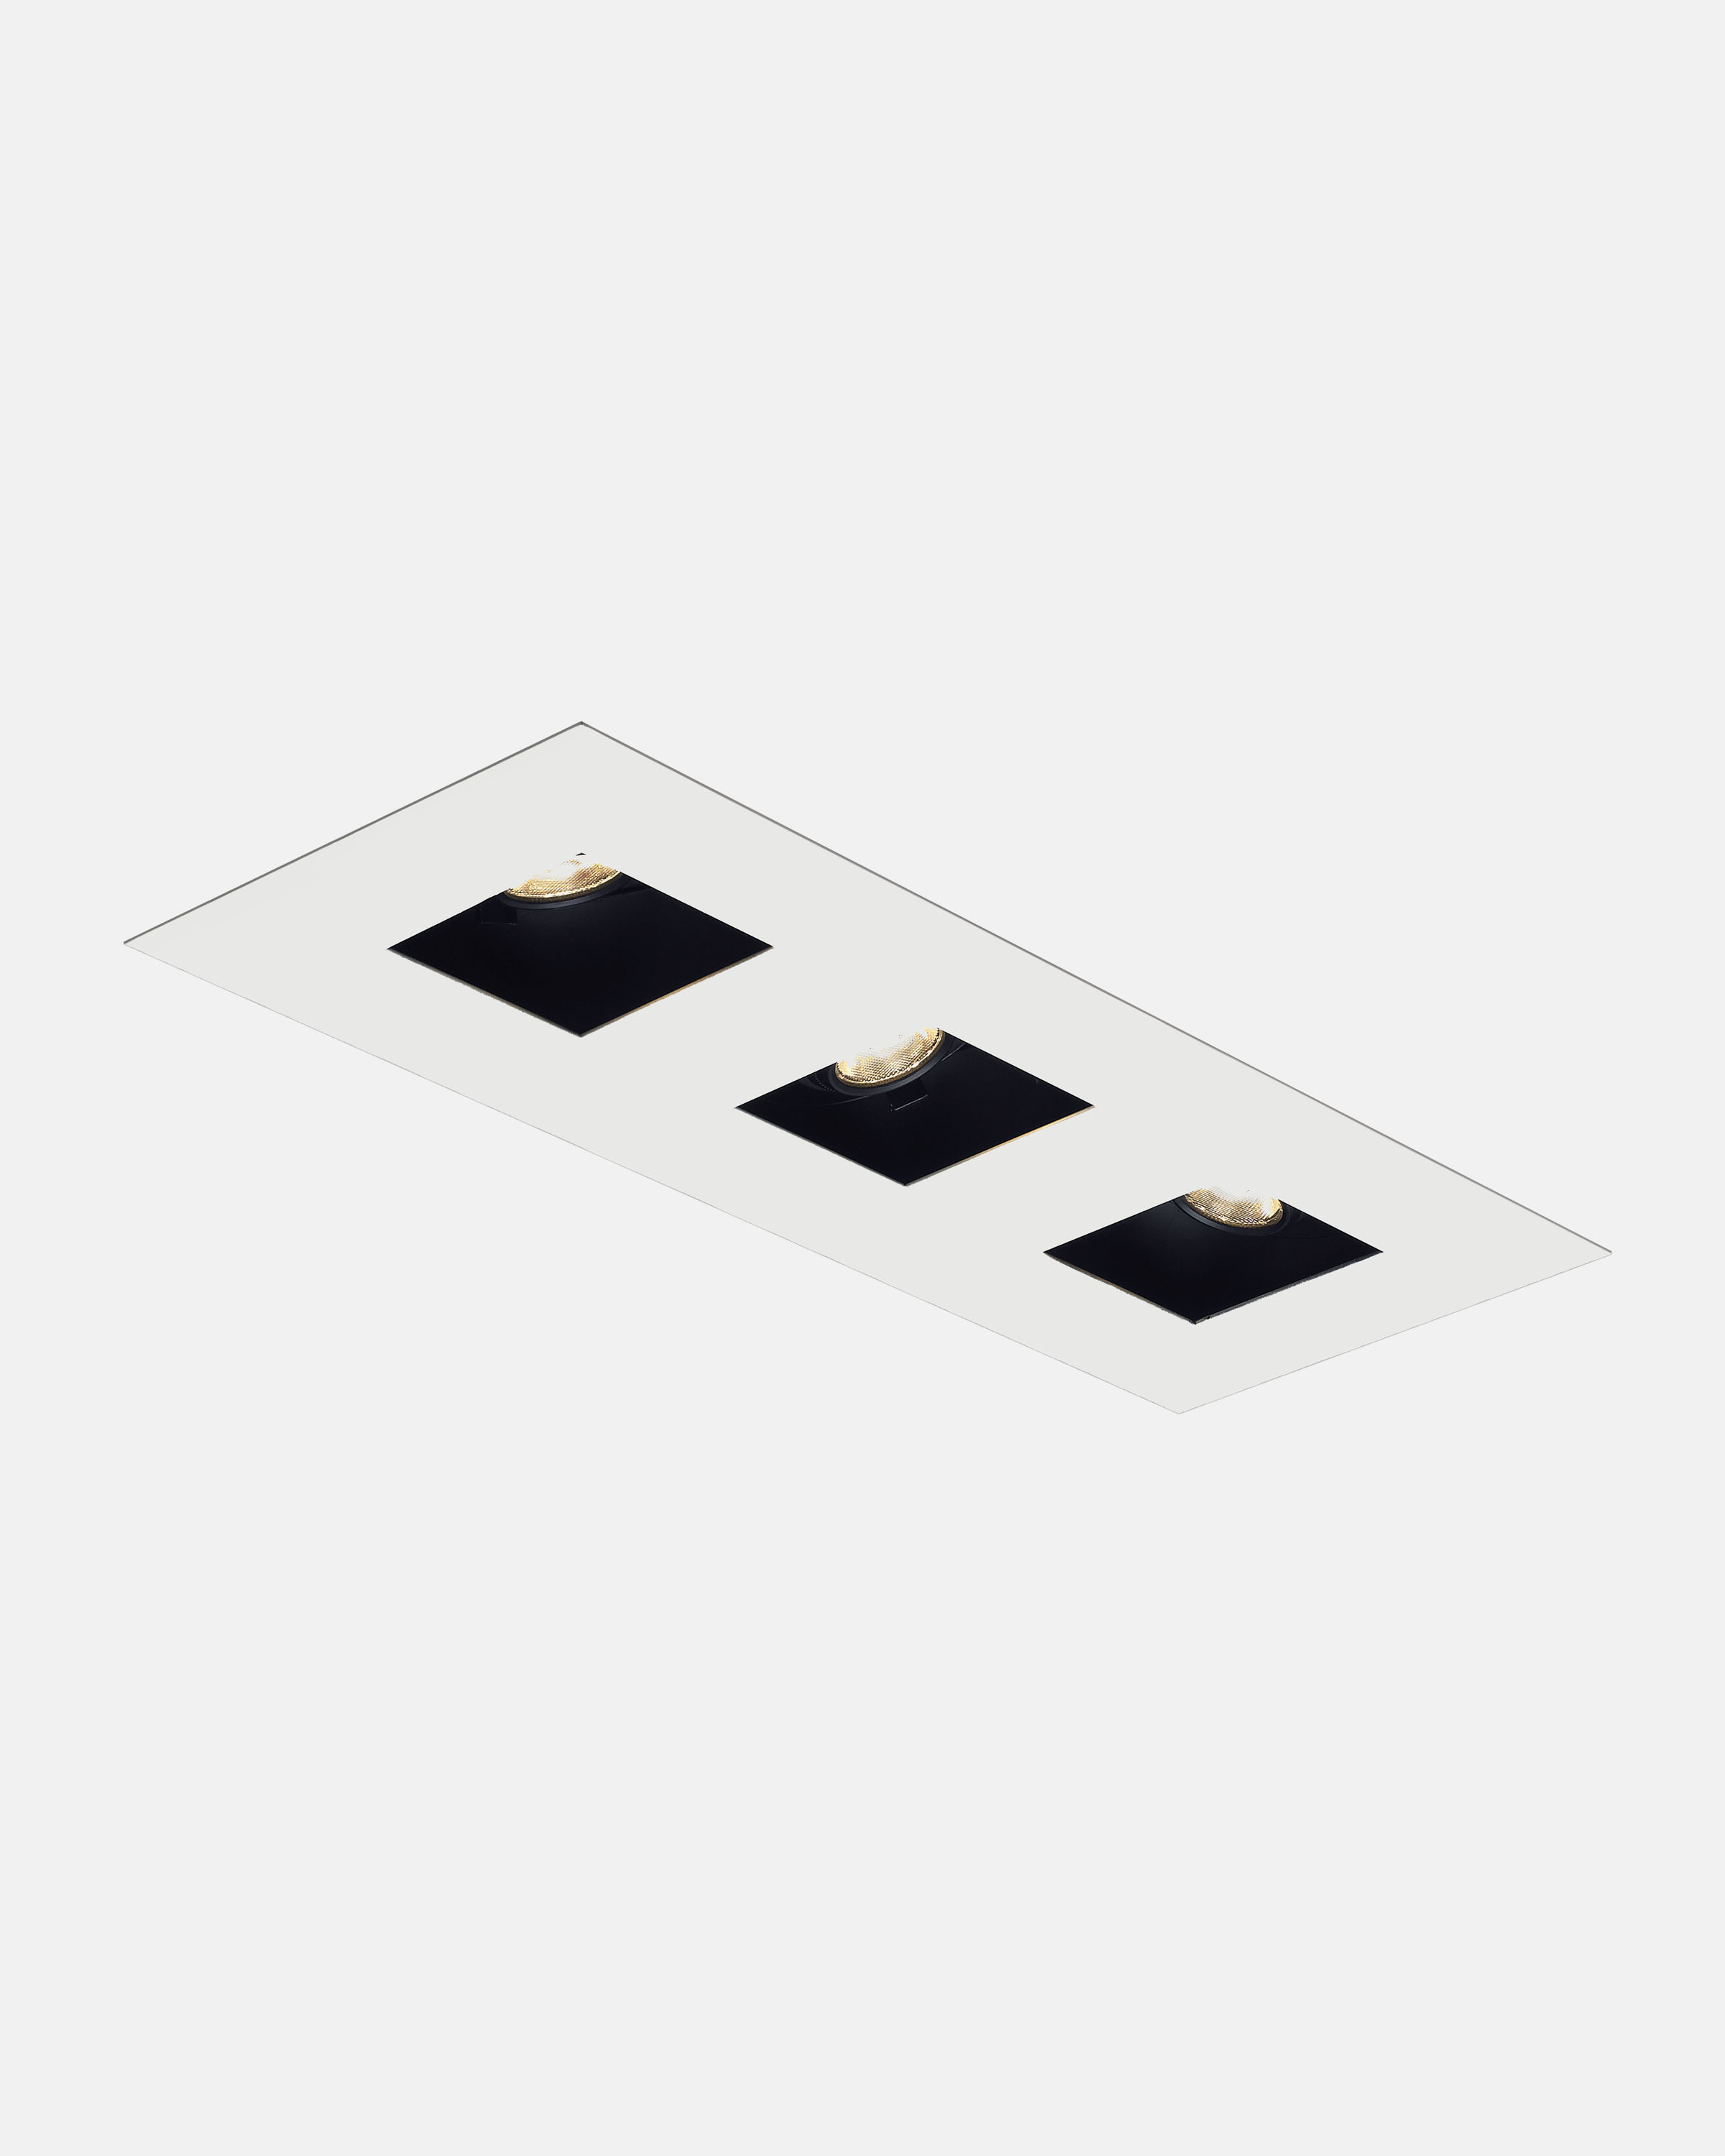 element by tech lighting. trimmed/flanged element led multiples, black housing with square white trim: a one-piece metal trim covers all module seams finished, element by tech lighting